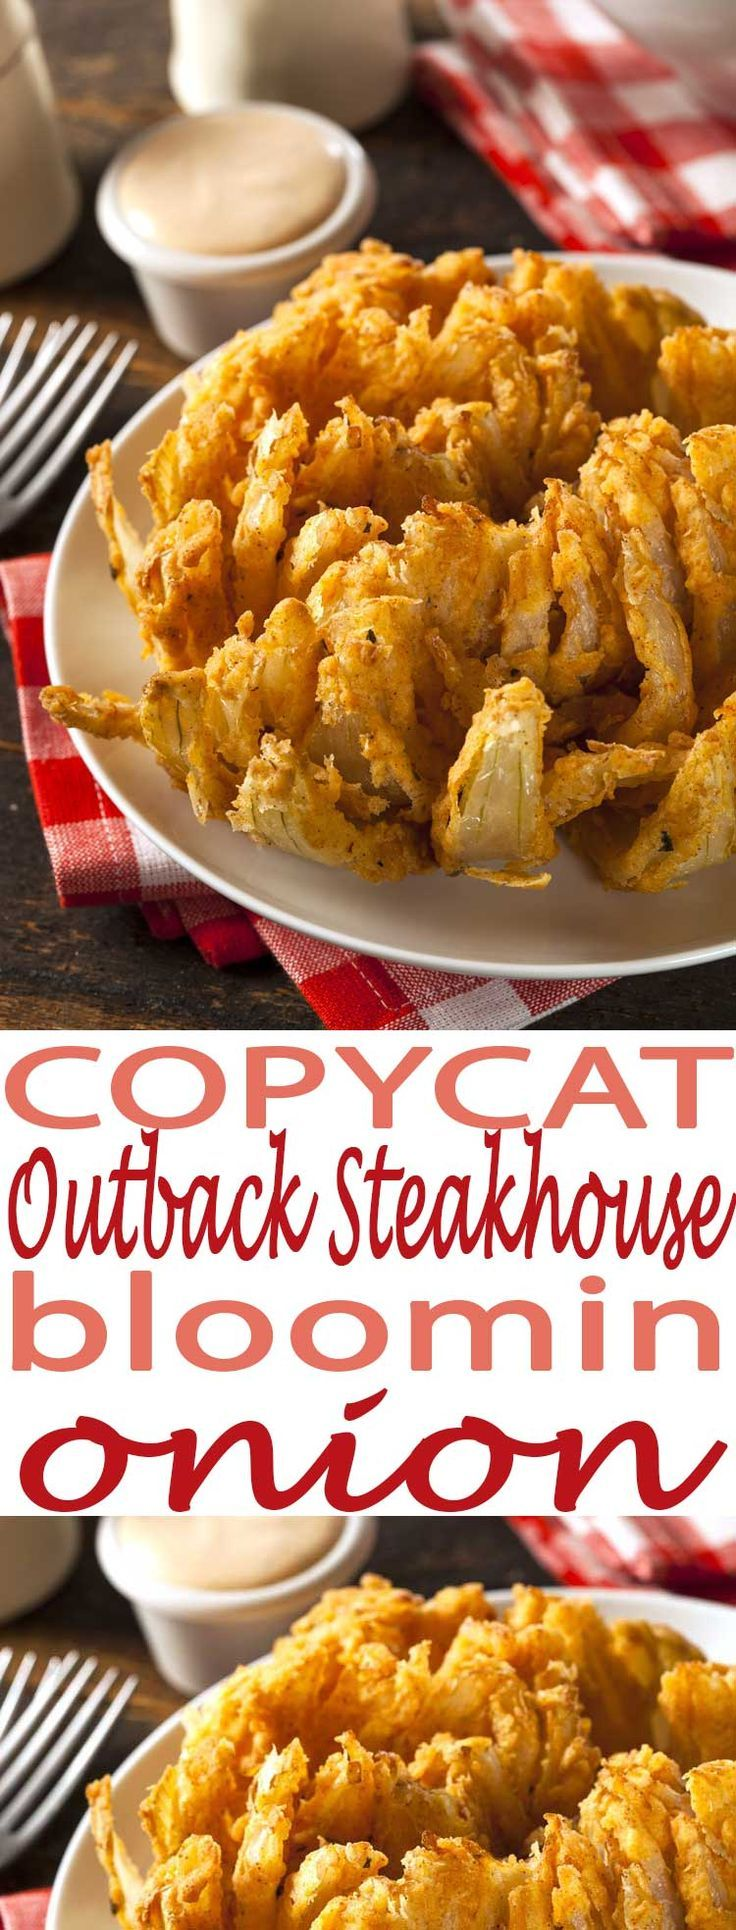 Outback Steakhouse Bloomin Onion Sauce recipe is an absolutely amazing appetizer. It's much easier to make than you might think.